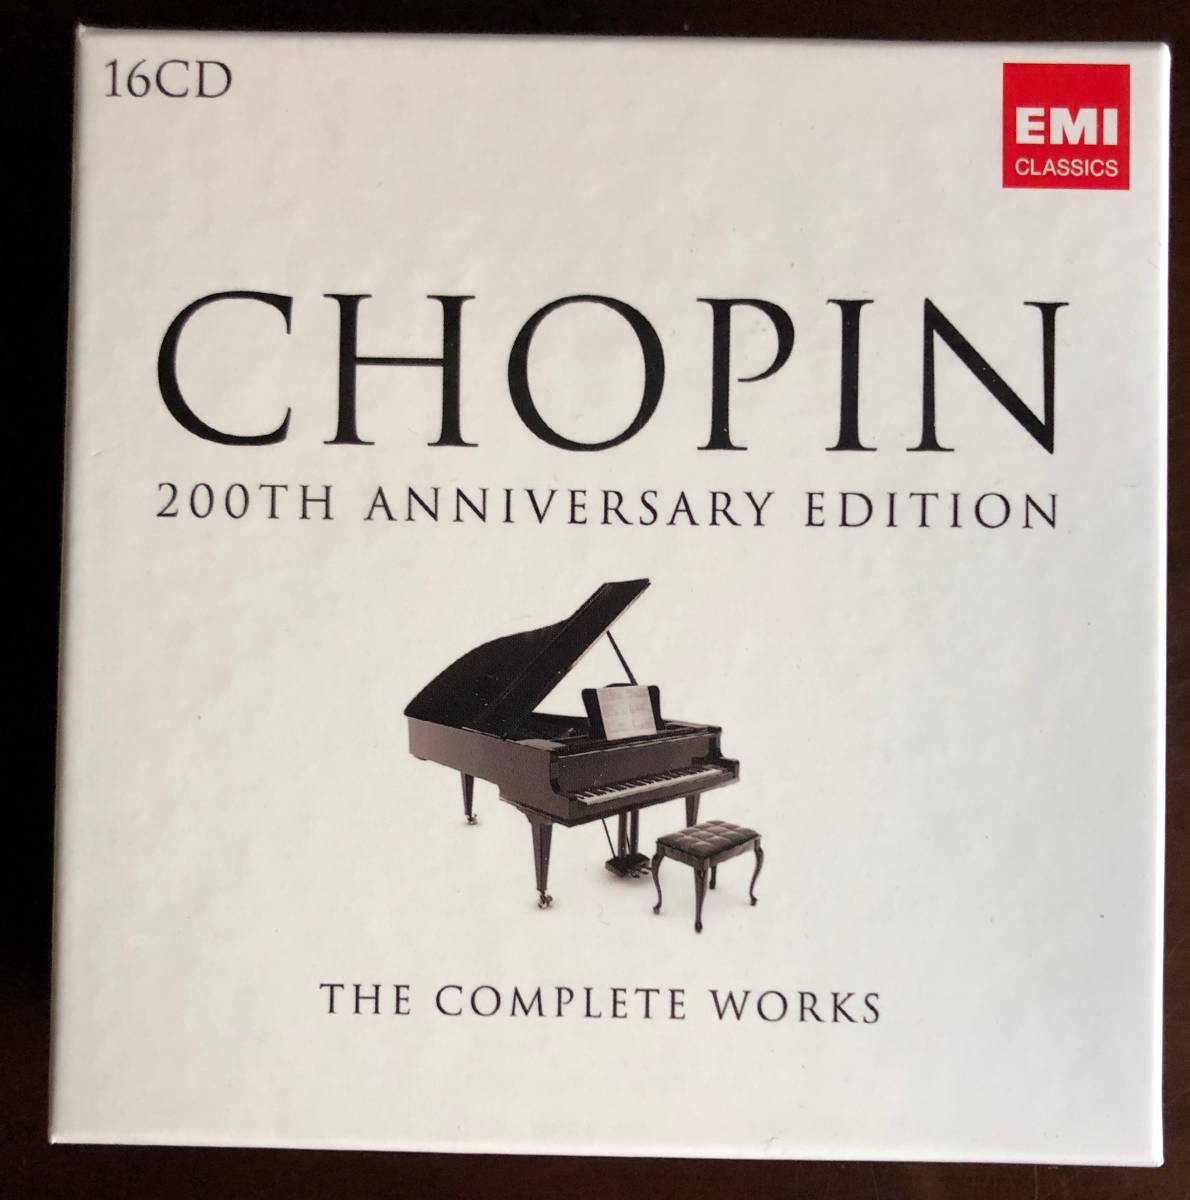 Chopin「The Complete Works 200th Anniversary Edition」EMI Classics 2009年 16枚組